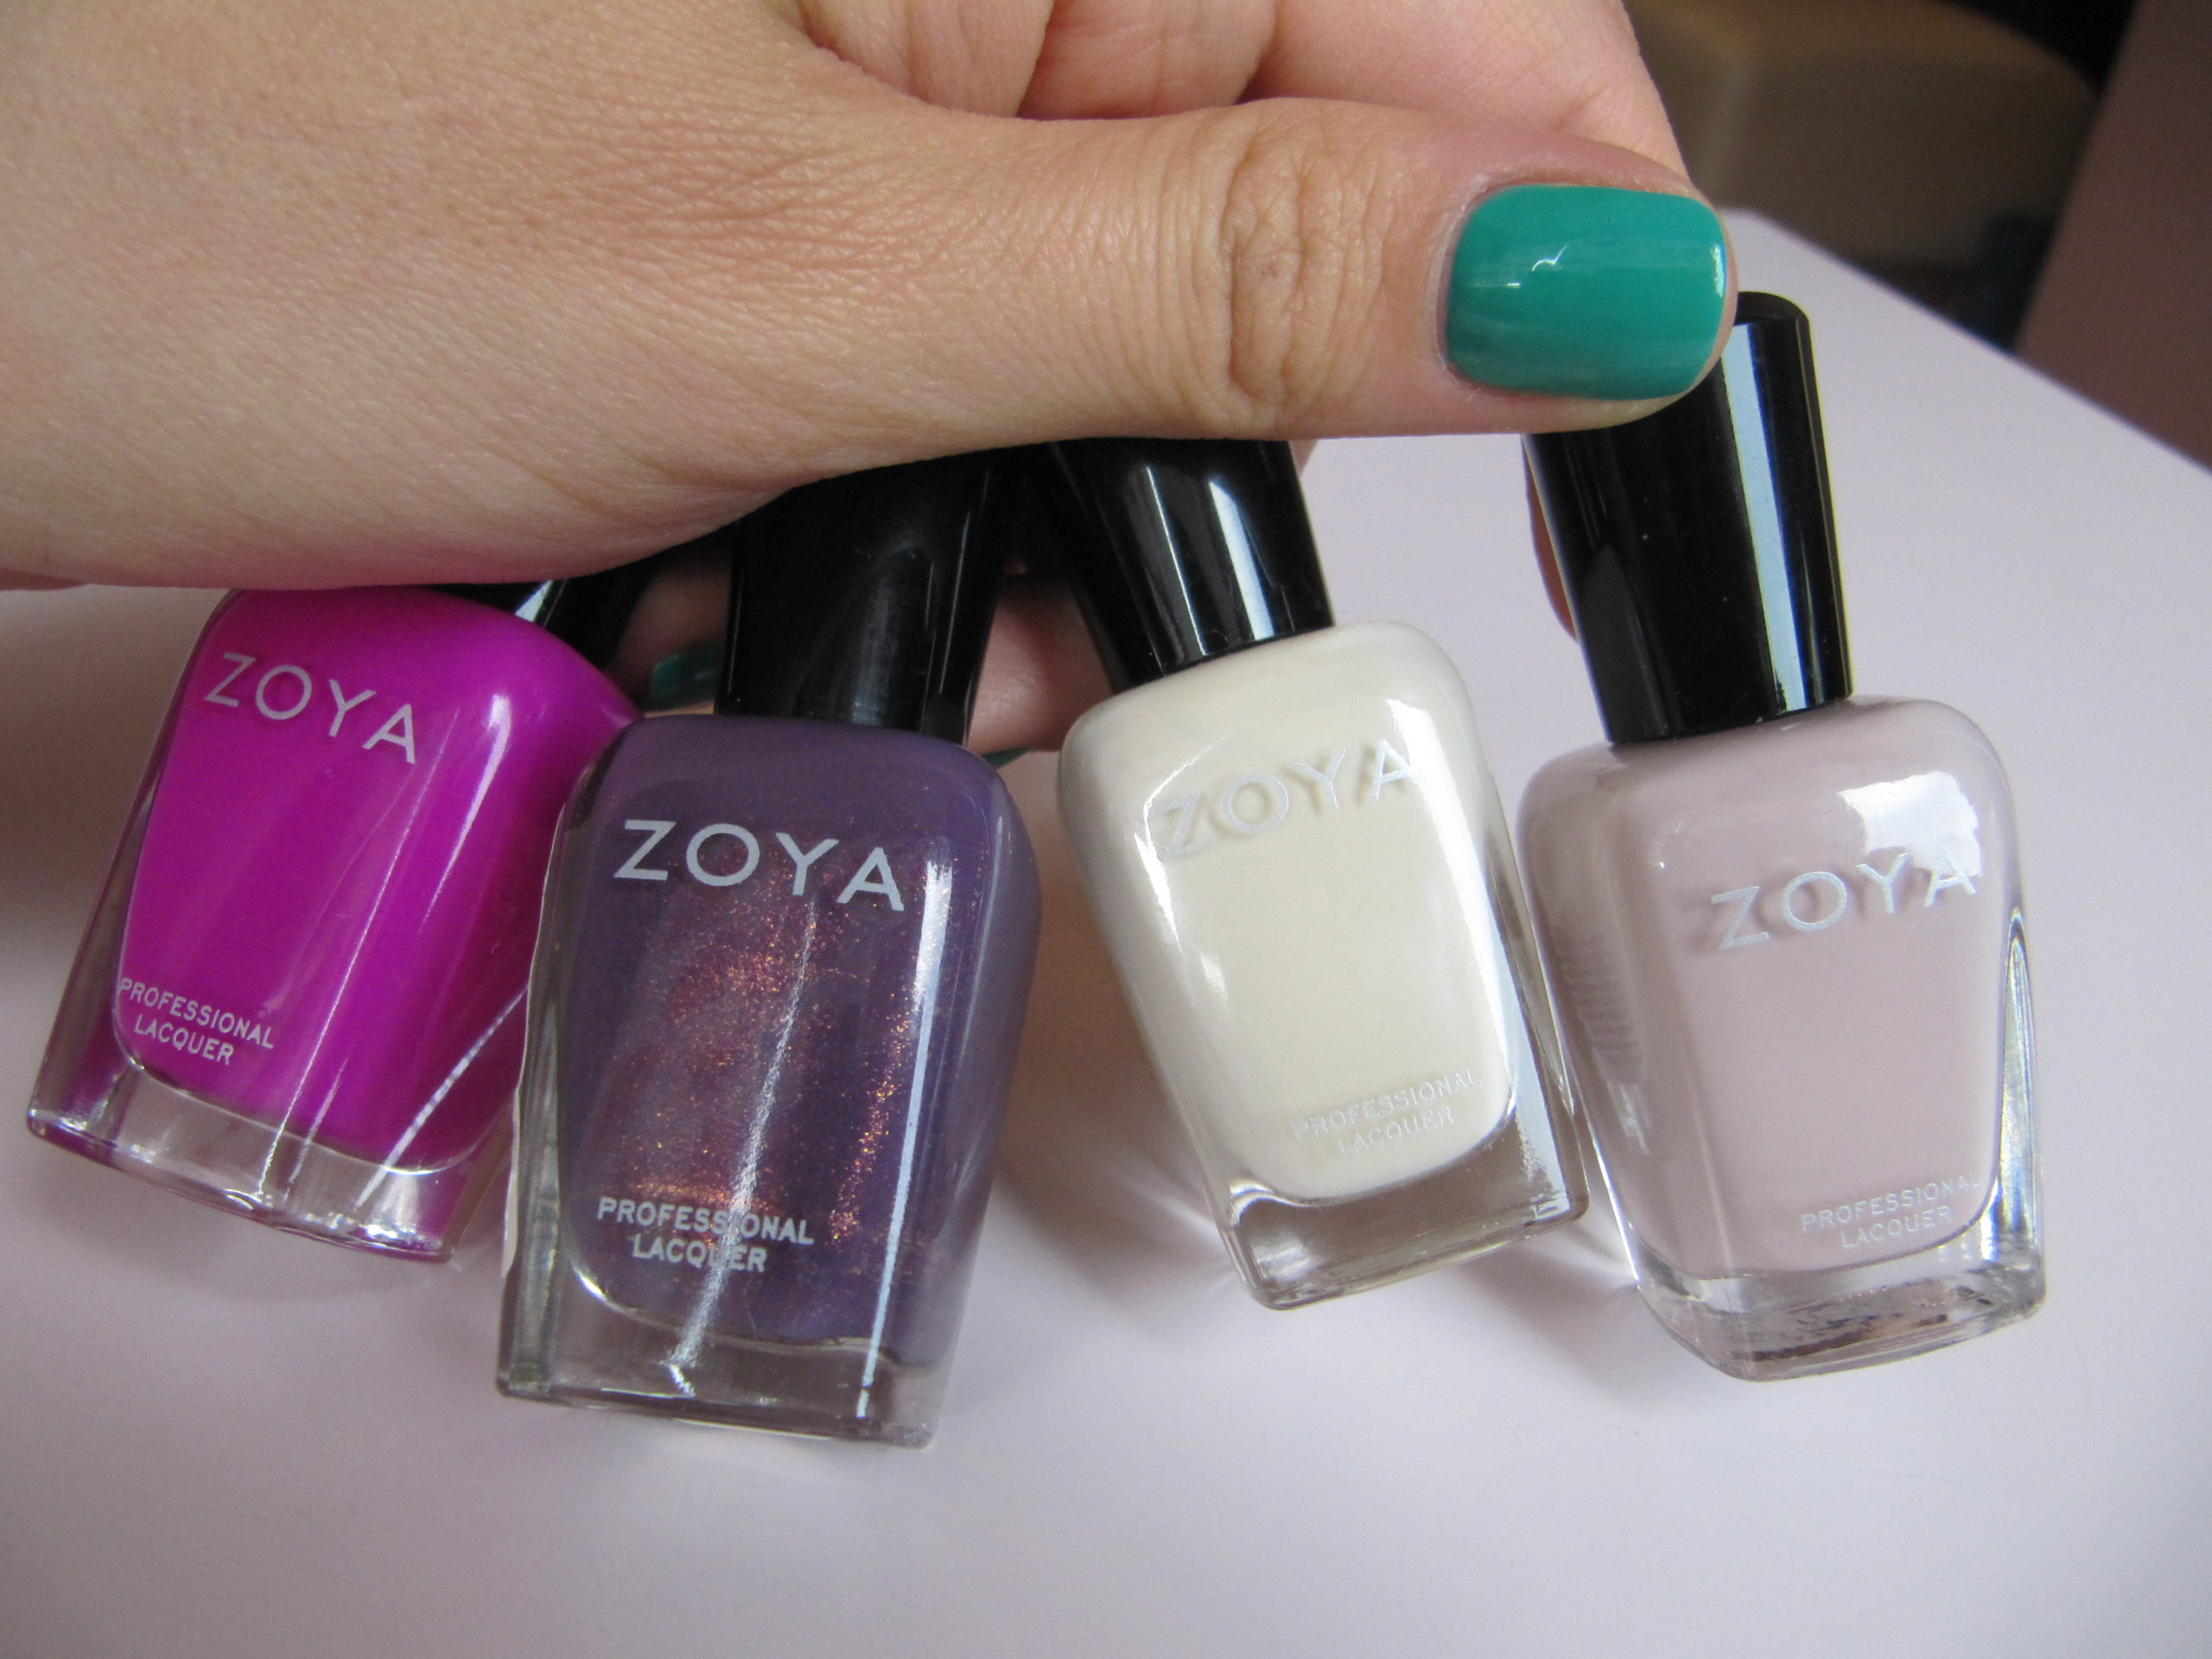 Zoya Nail Polish Remover Review – Another Waste Of Money?